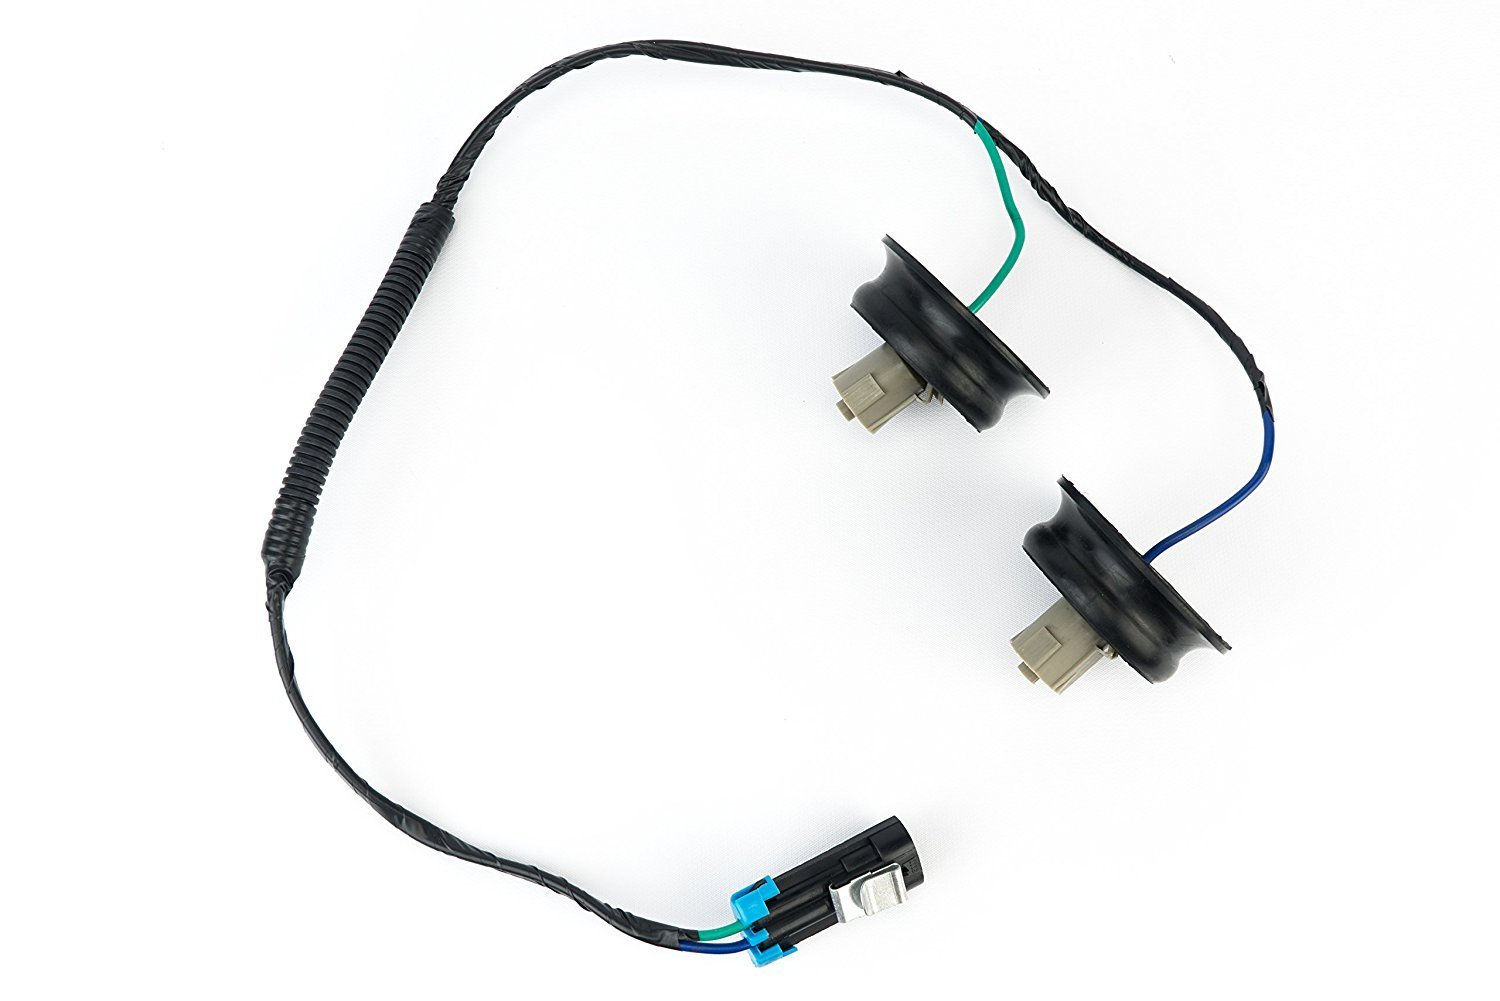 Aa Ignition Products Knock Sensor Wire Harness The Connects To Sensors On Your Engine And Receives Signals From Both These Taken